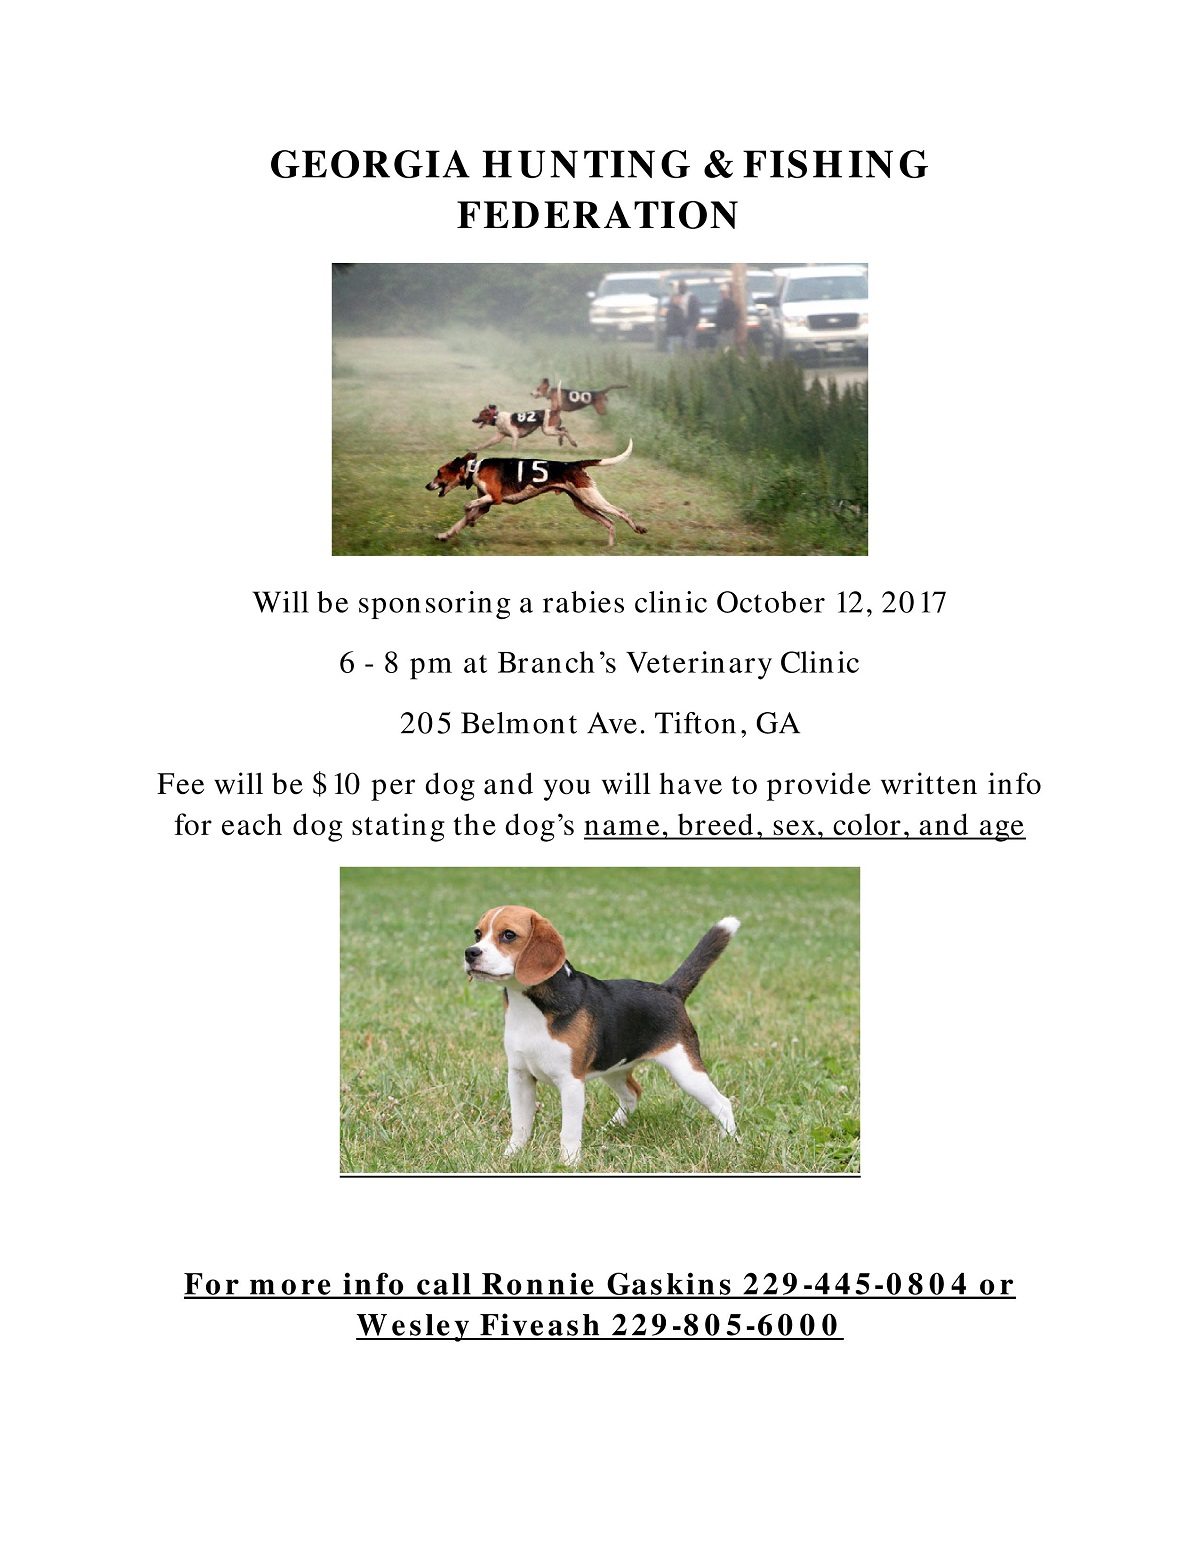 Georgia Hunting & Fishing Federation Rabies Clinic